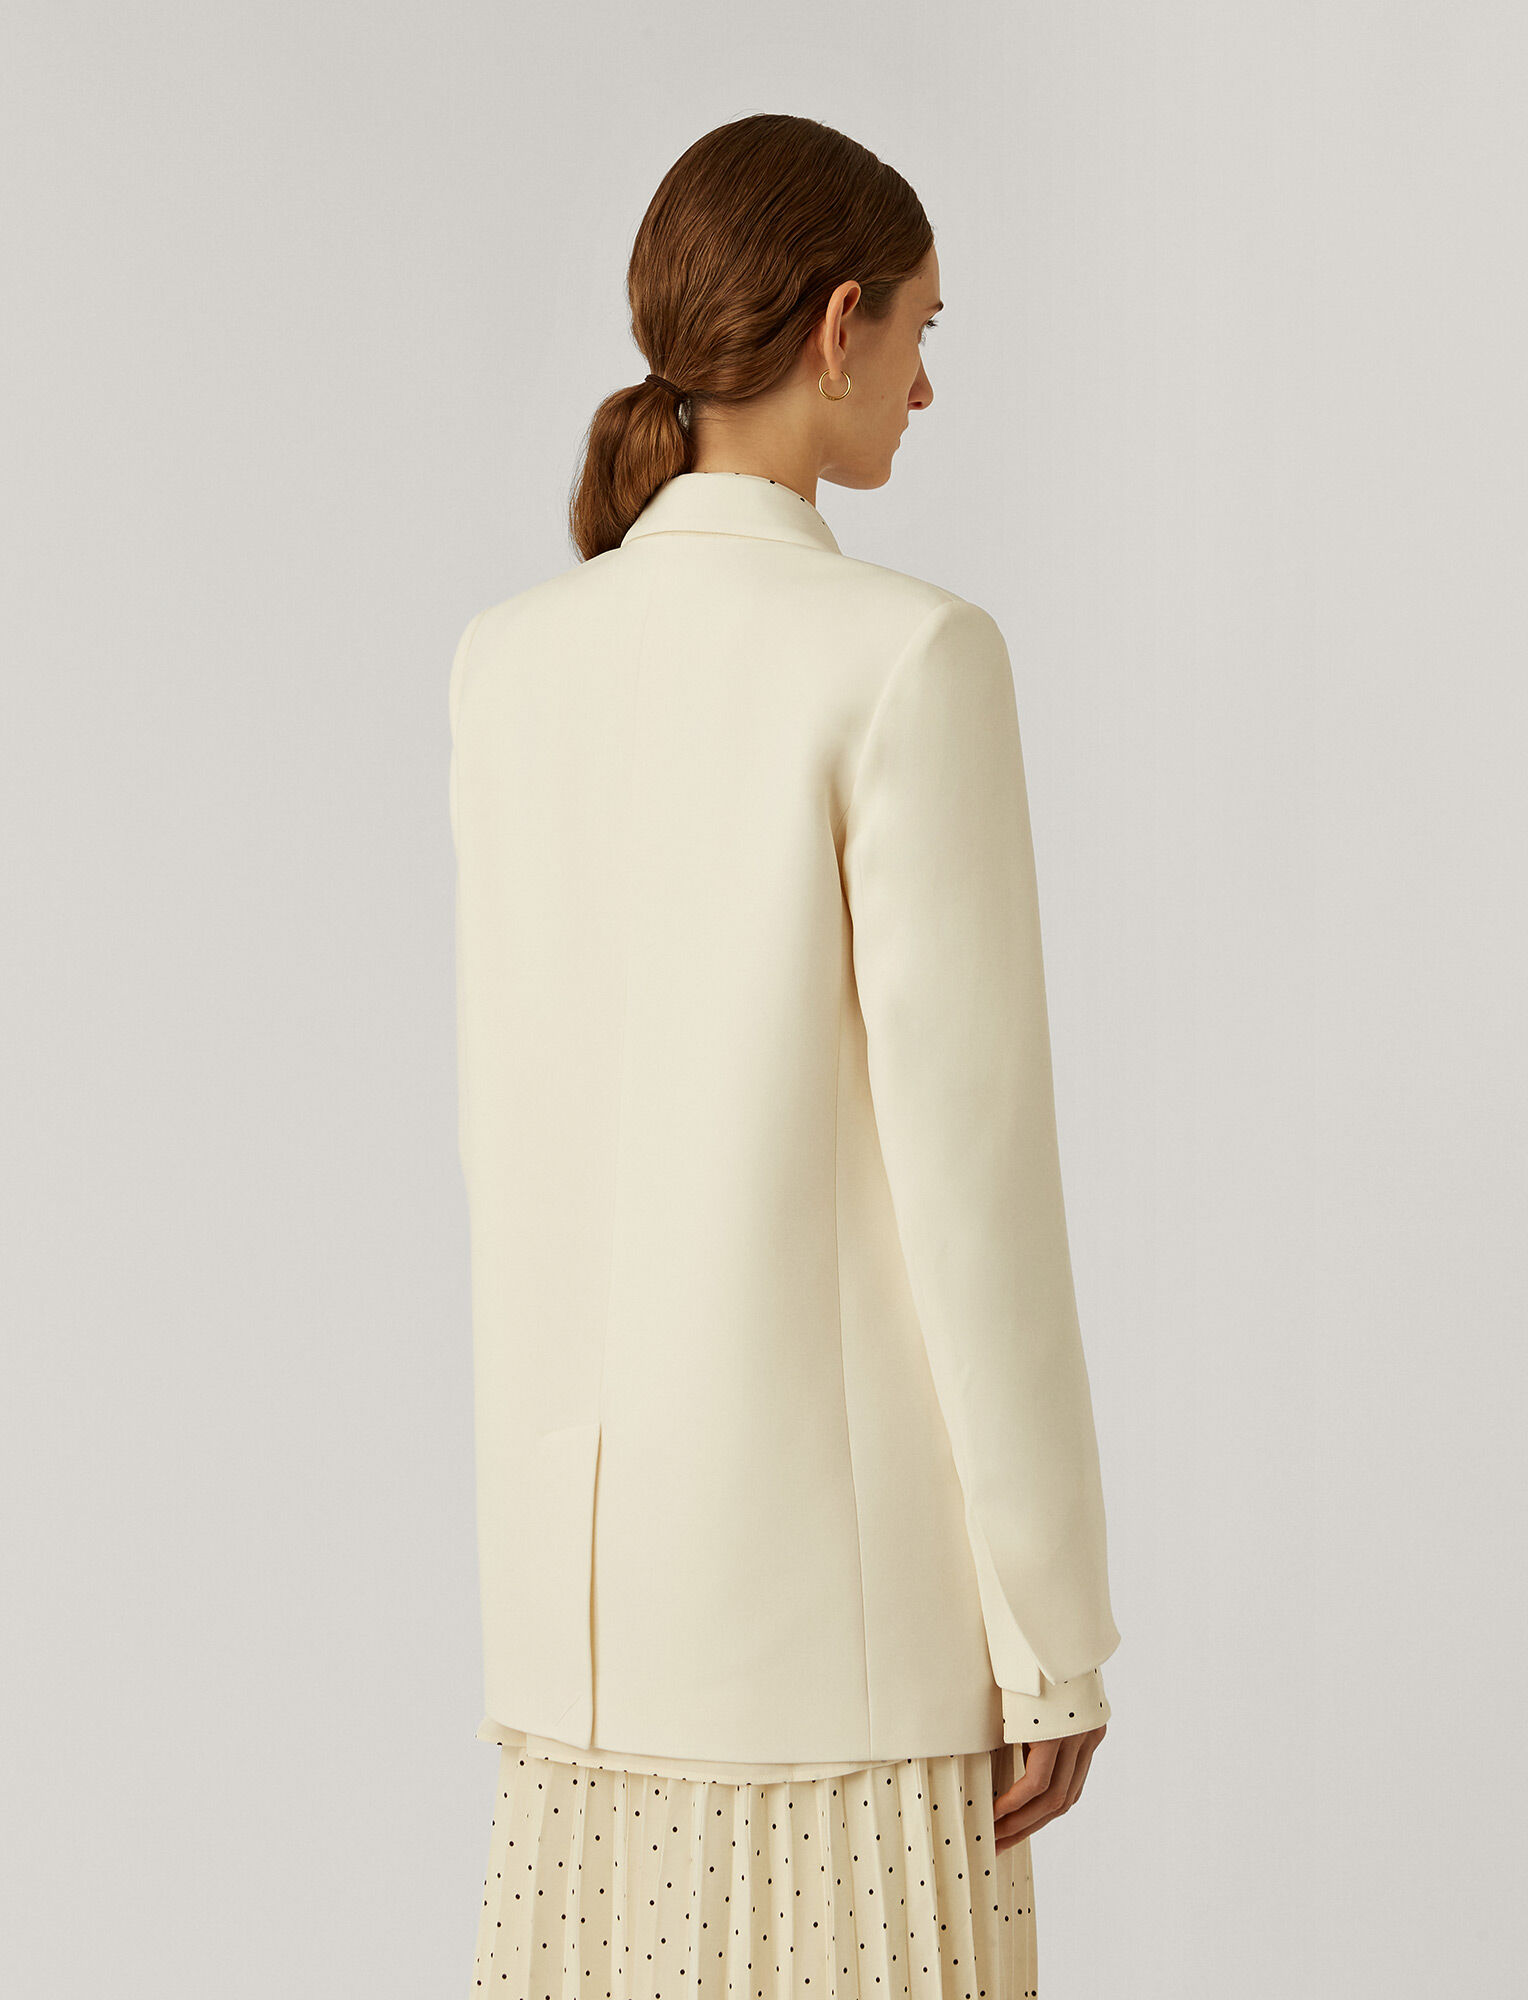 Joseph, New Cady Joan Jacket, in OFF WHITE